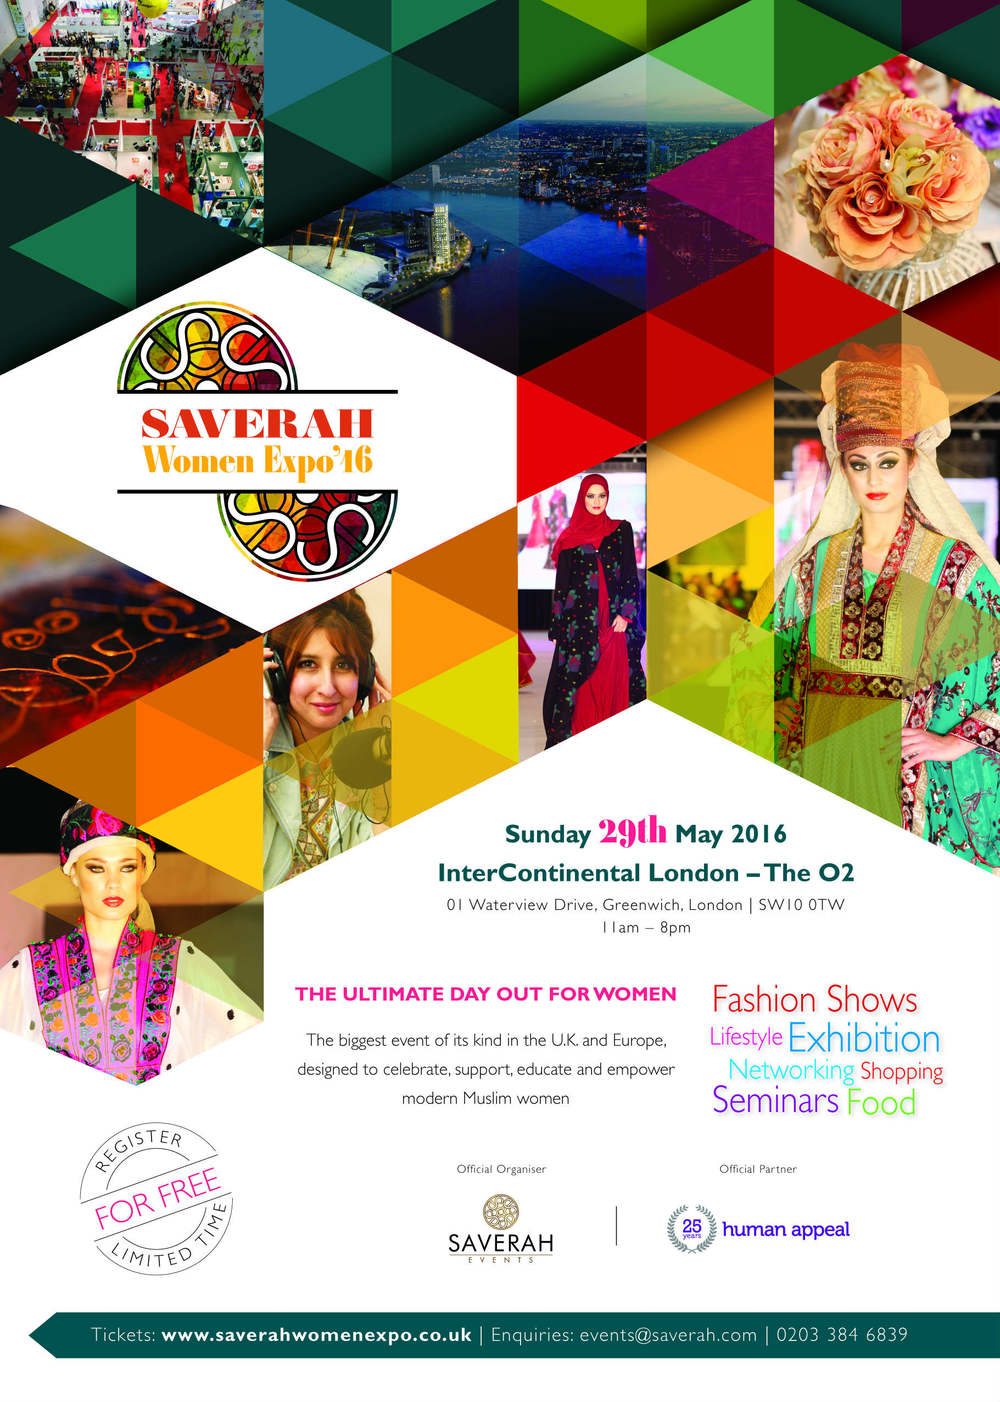 Saverah Women Expo 16